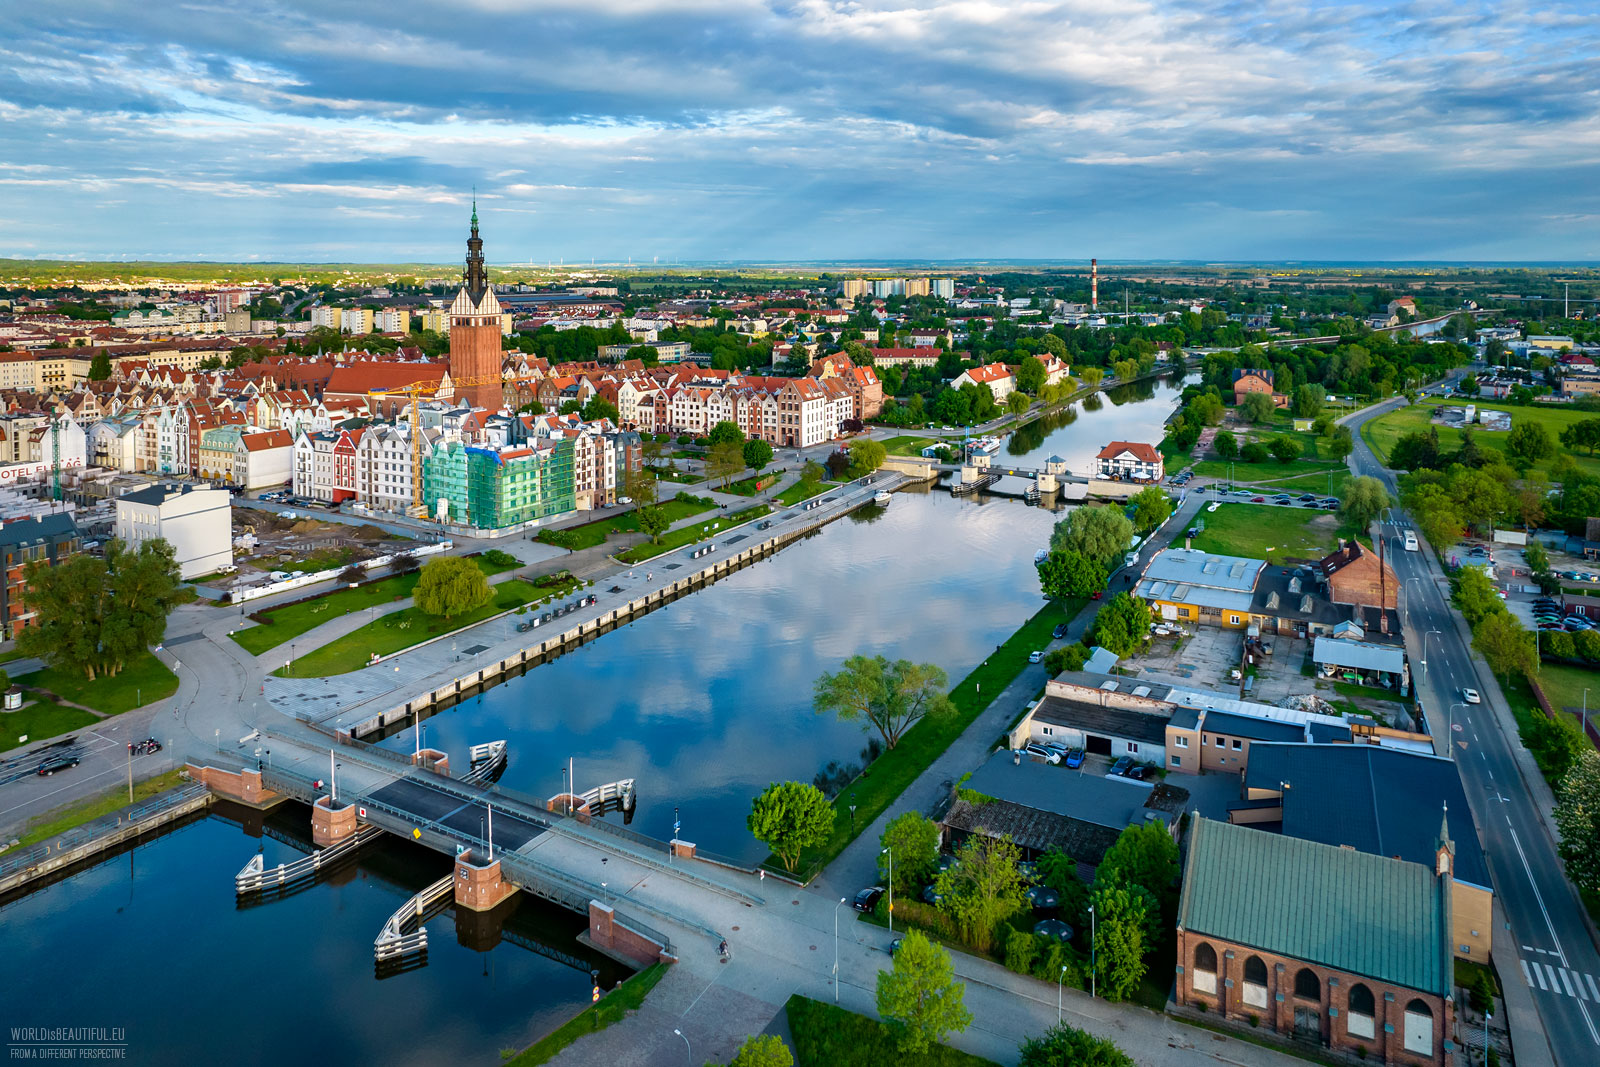 Elblag from a bird's eye view